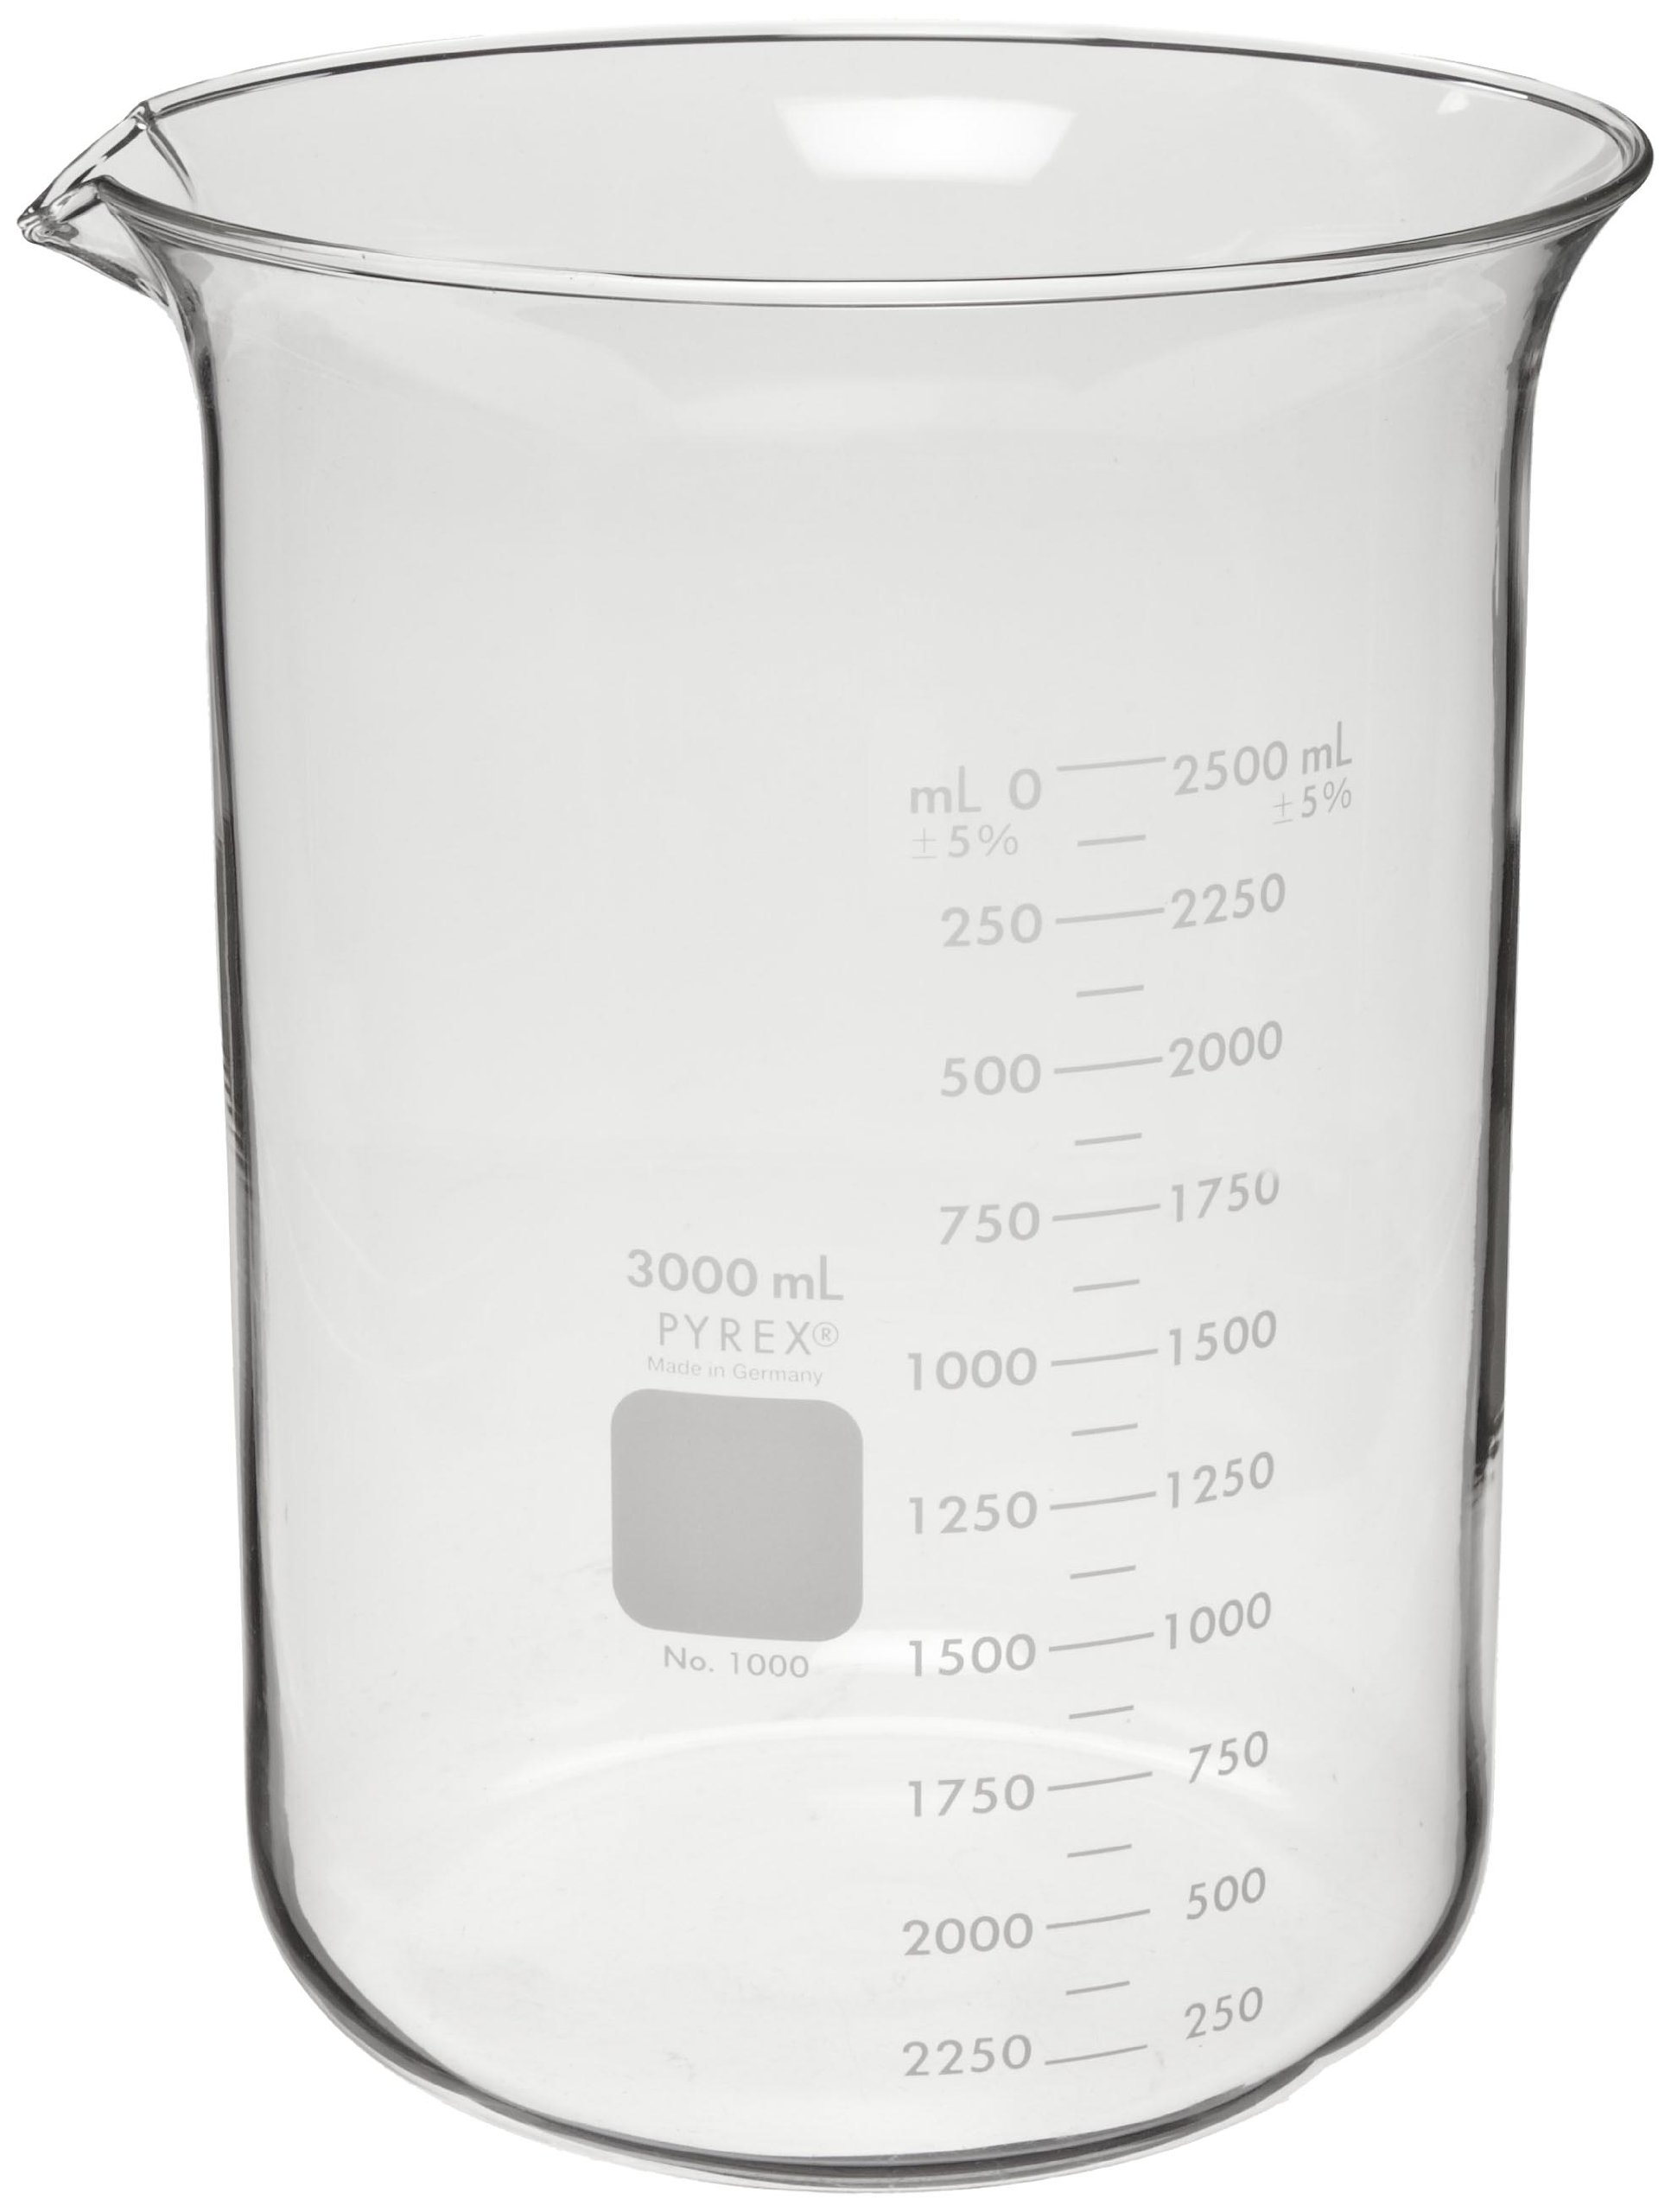 Corning Pyrex 1000-3L Glass 3 Liter Graduated Low Form Griffin Beaker, 125mL Graduation Interval, with Double Scale